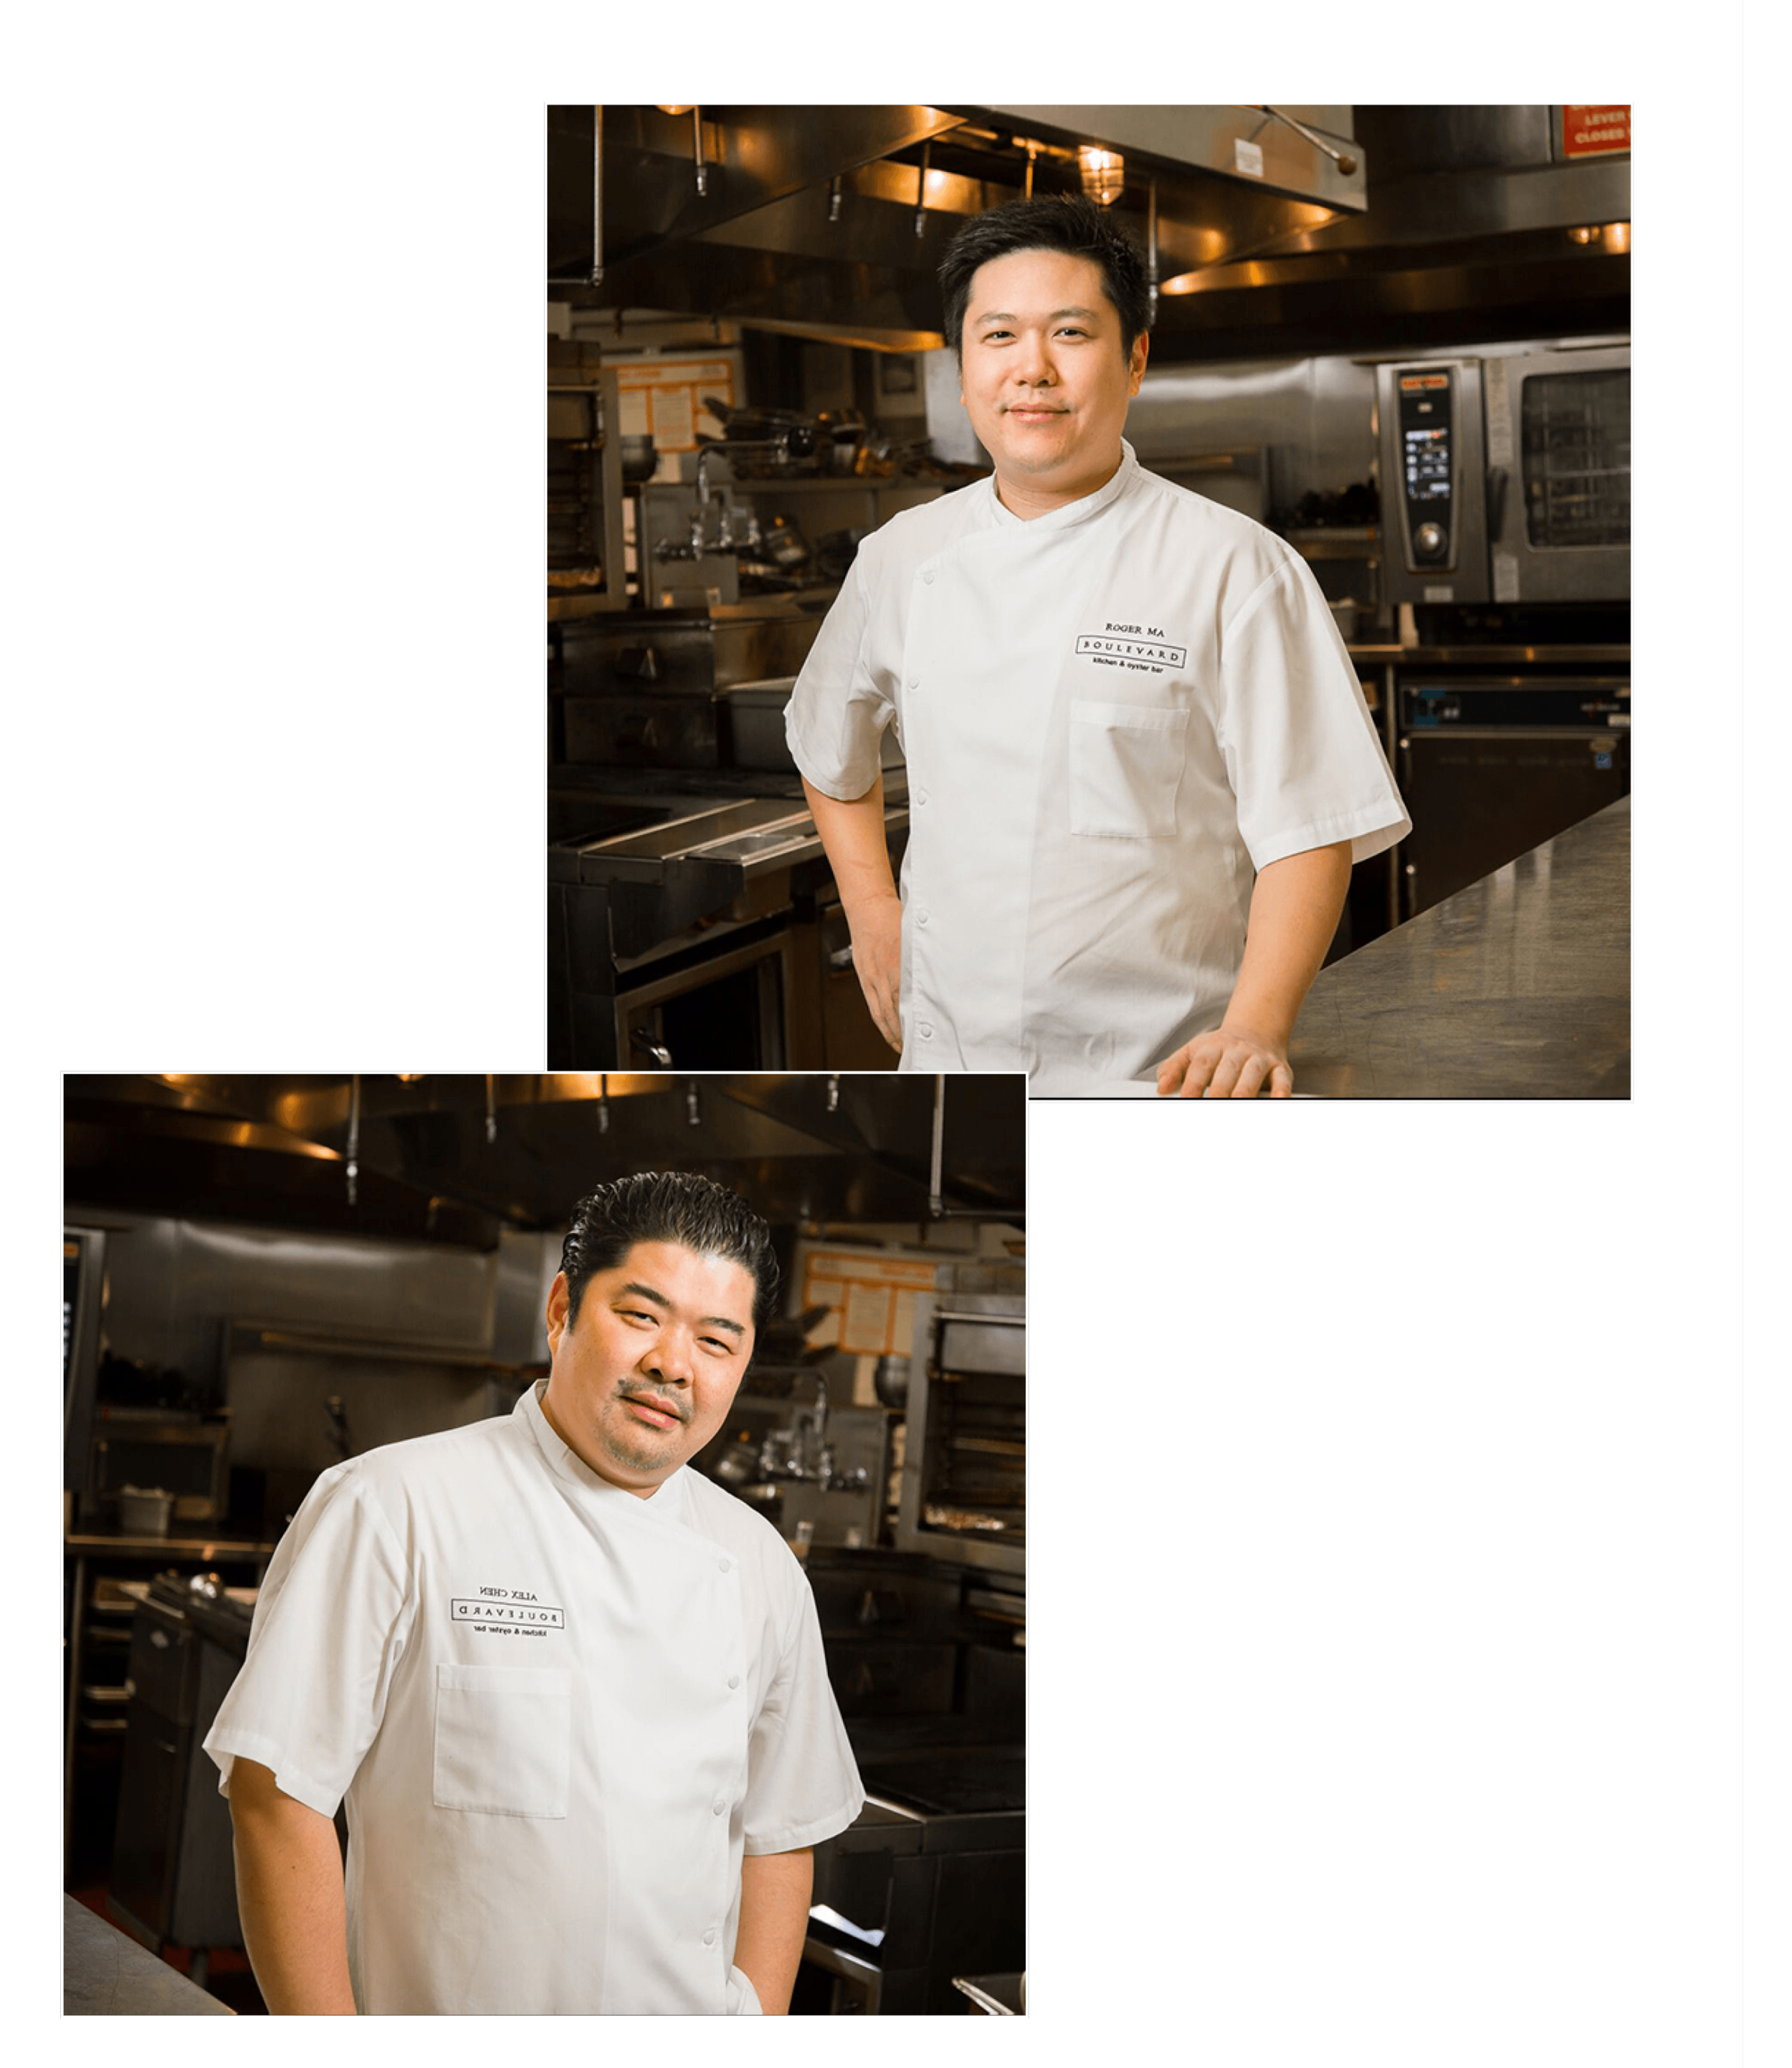 BOULEVARD KITCHEN & OYSTER BAR CHEFS ALEX CHEN, ROGER MA PROMOTED TO NEW ROLES - APRIL 4, 2018Boulevard Kitchen & Oyster Bar chefs Alex Chen and Roger Ma — who have anchored the back-of-house team at Boulevard since its inception in 2014 — have been promoted to new roles within the restaurant and beyond.Chen will now take on the role of Executive Chef – Signature Restaurants for Sutton's luxury brand, where he will also drive menu and restaurant development, while continuing to be based at Boulevard to maintain a mentorship role and oversee private and custom menu creation. Ma will now step into the role of Executive Chef.